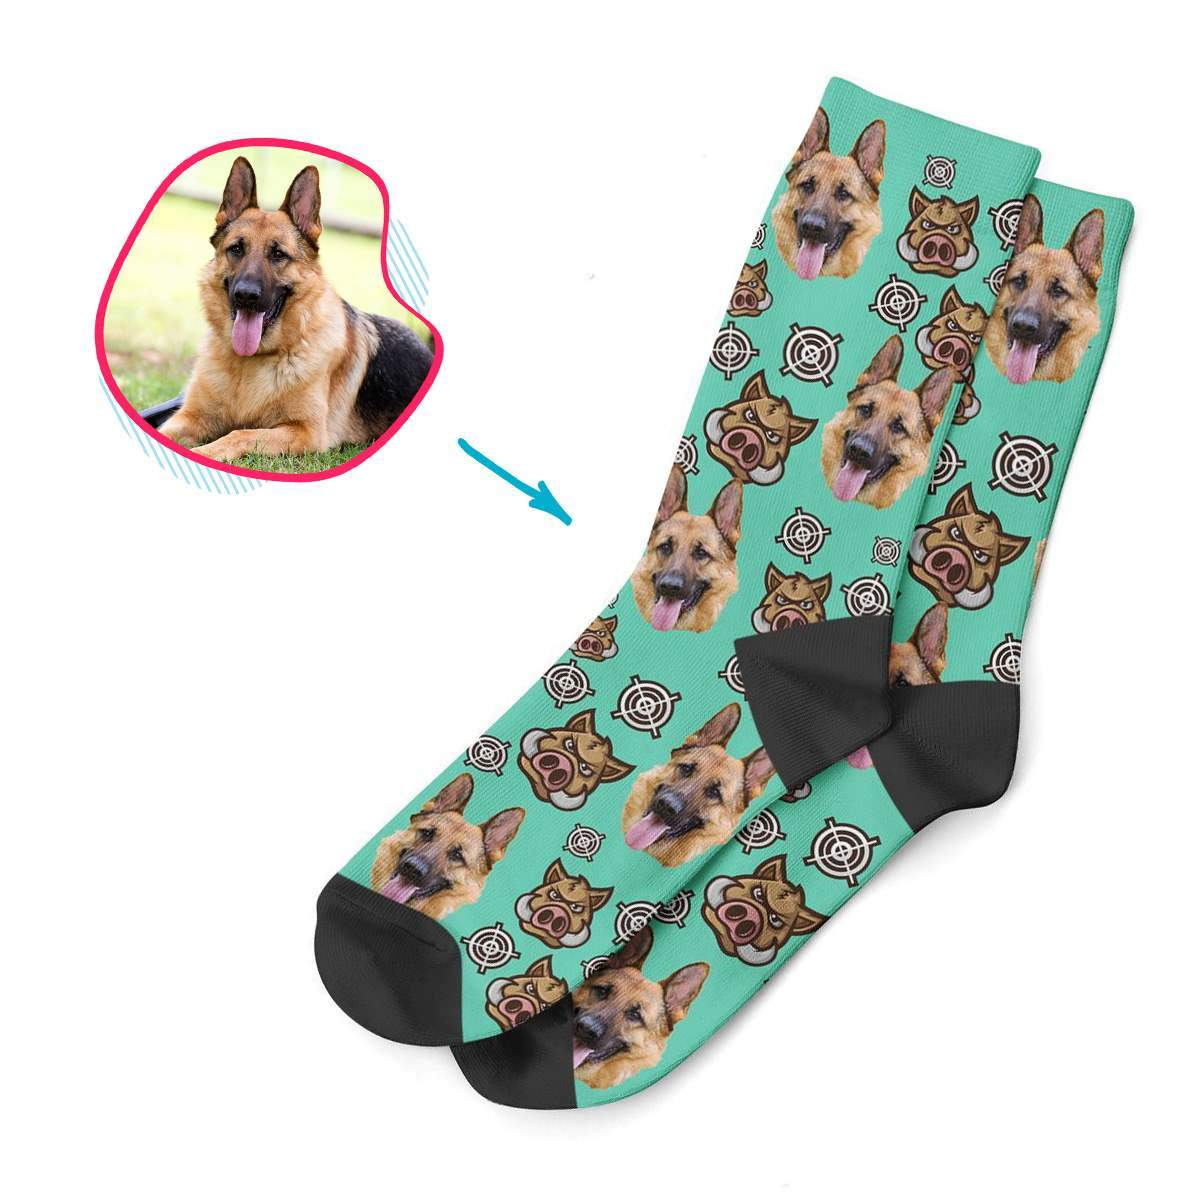 mint Boar Hunter socks personalized with photo of face printed on them